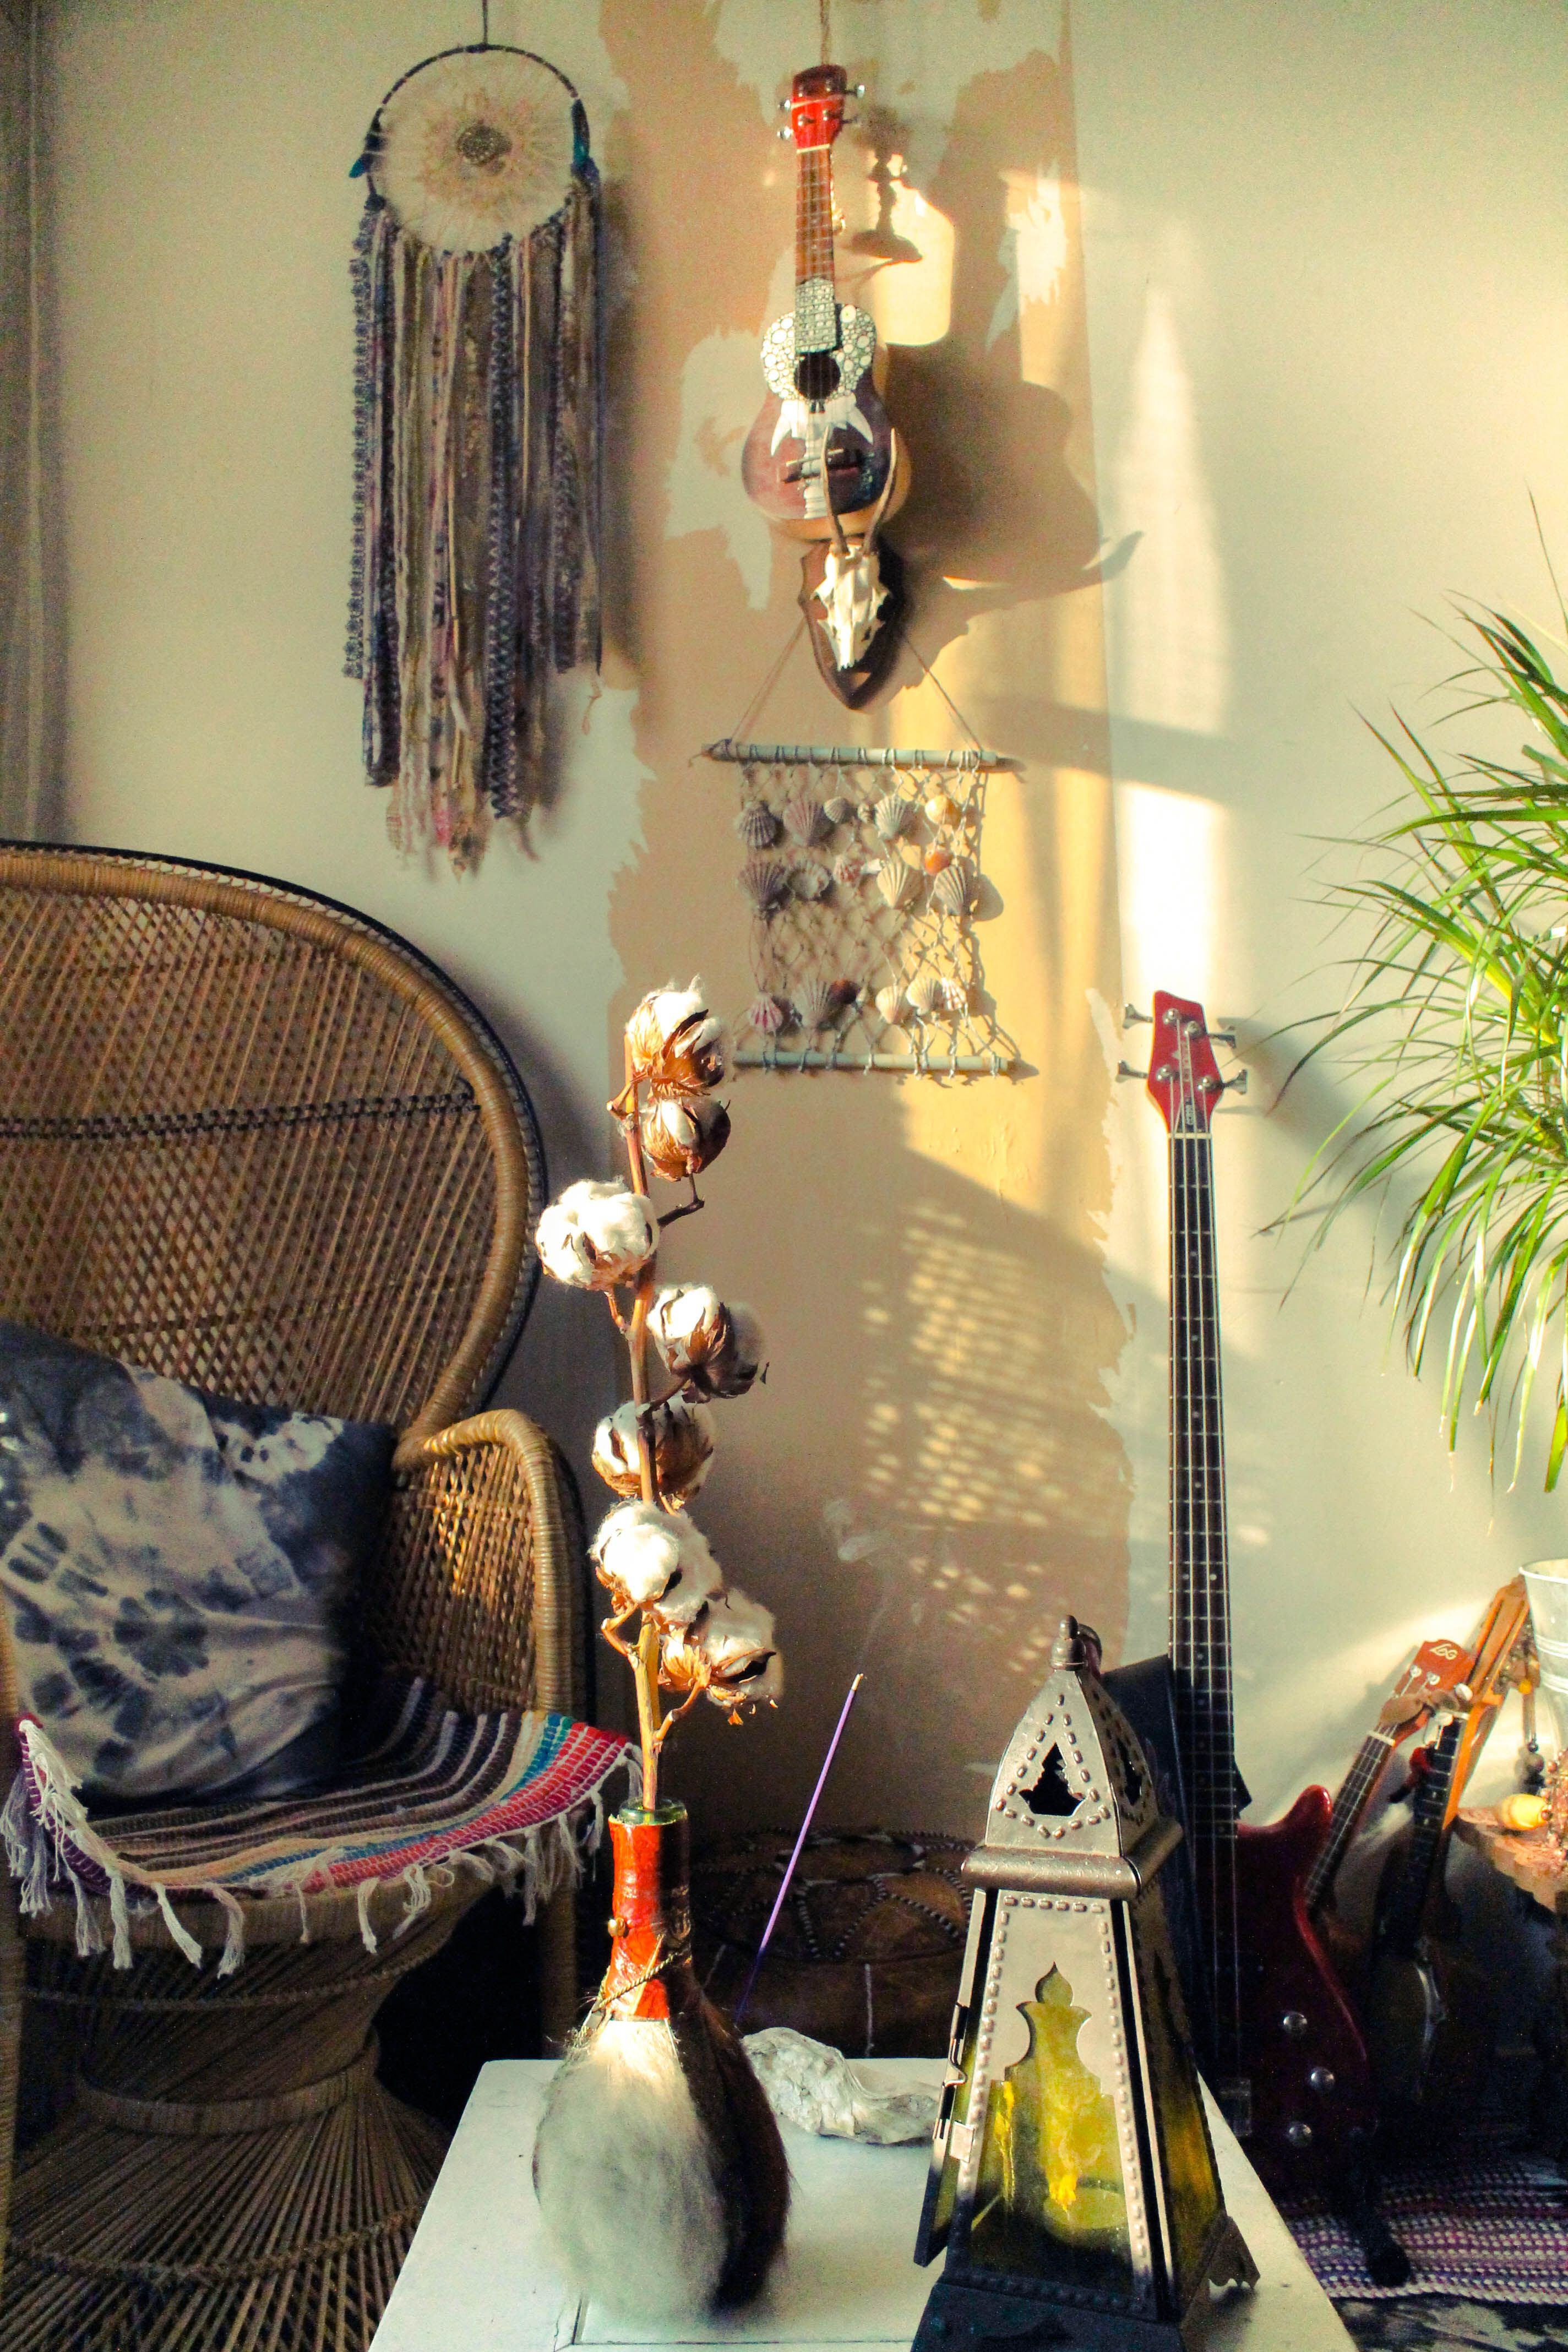 Bohemian Interior. I want one of those Wicca chairs :)